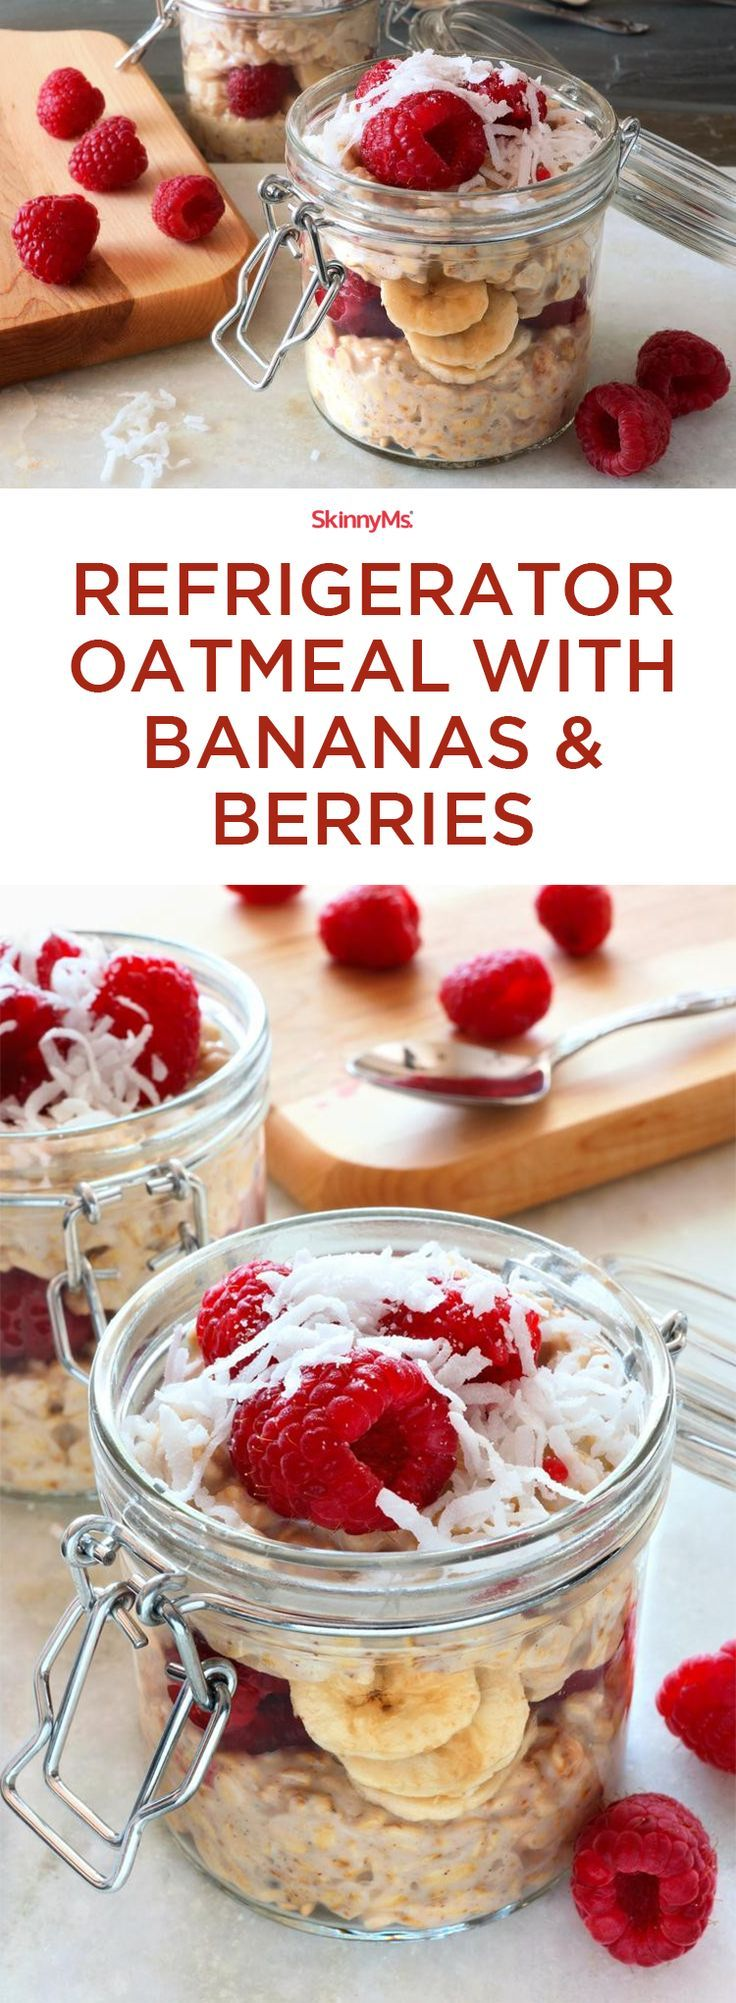 1464 best images about Breakfast Time on Pinterest